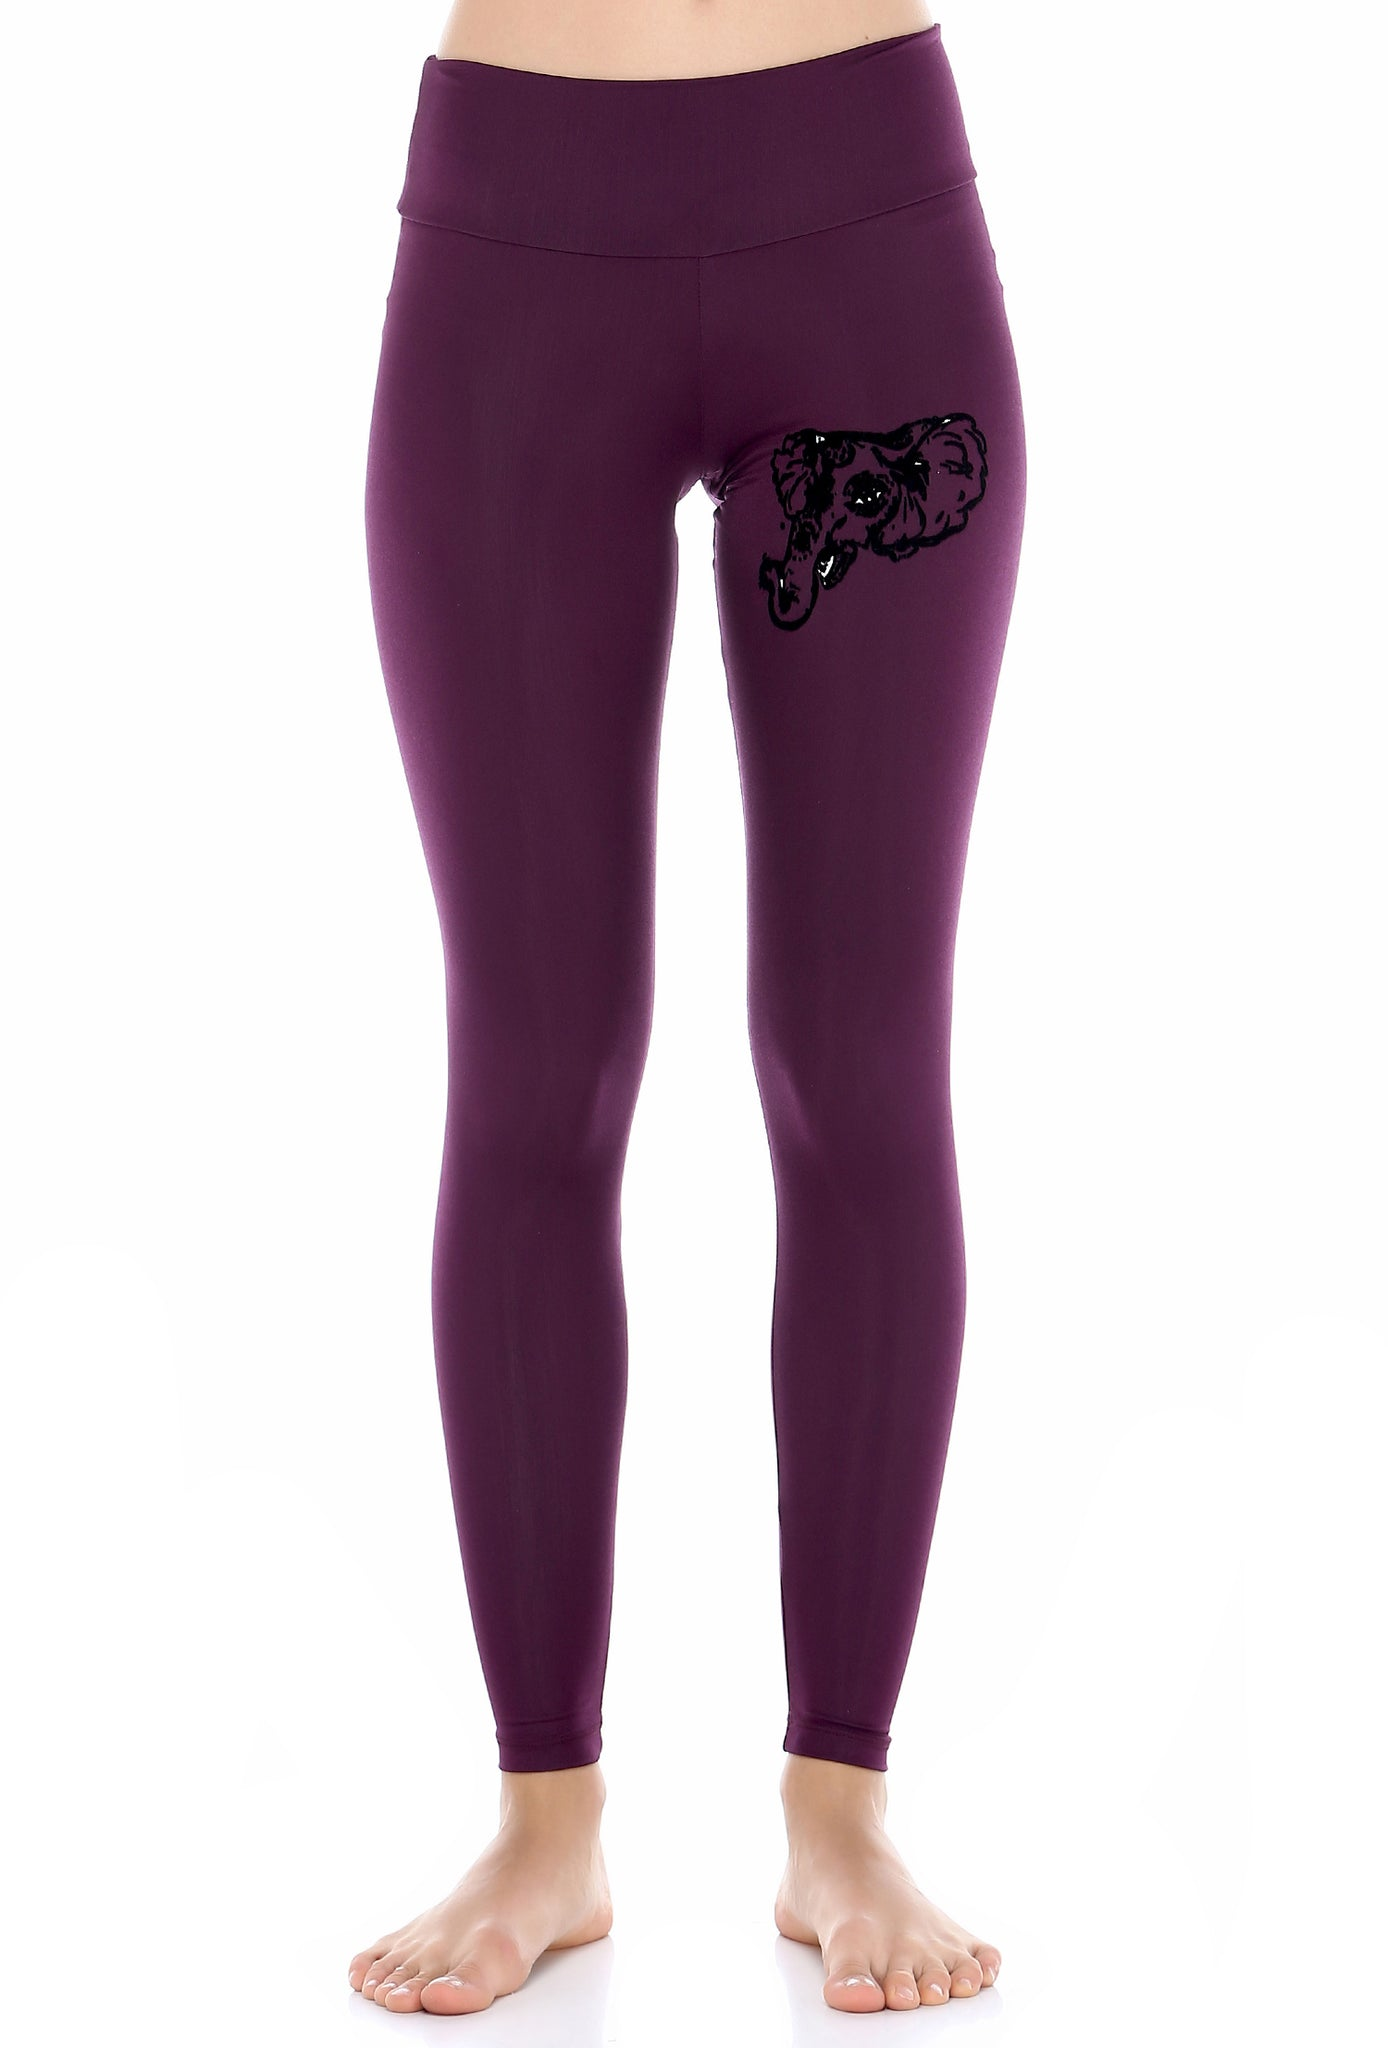 Ganesha purple legging